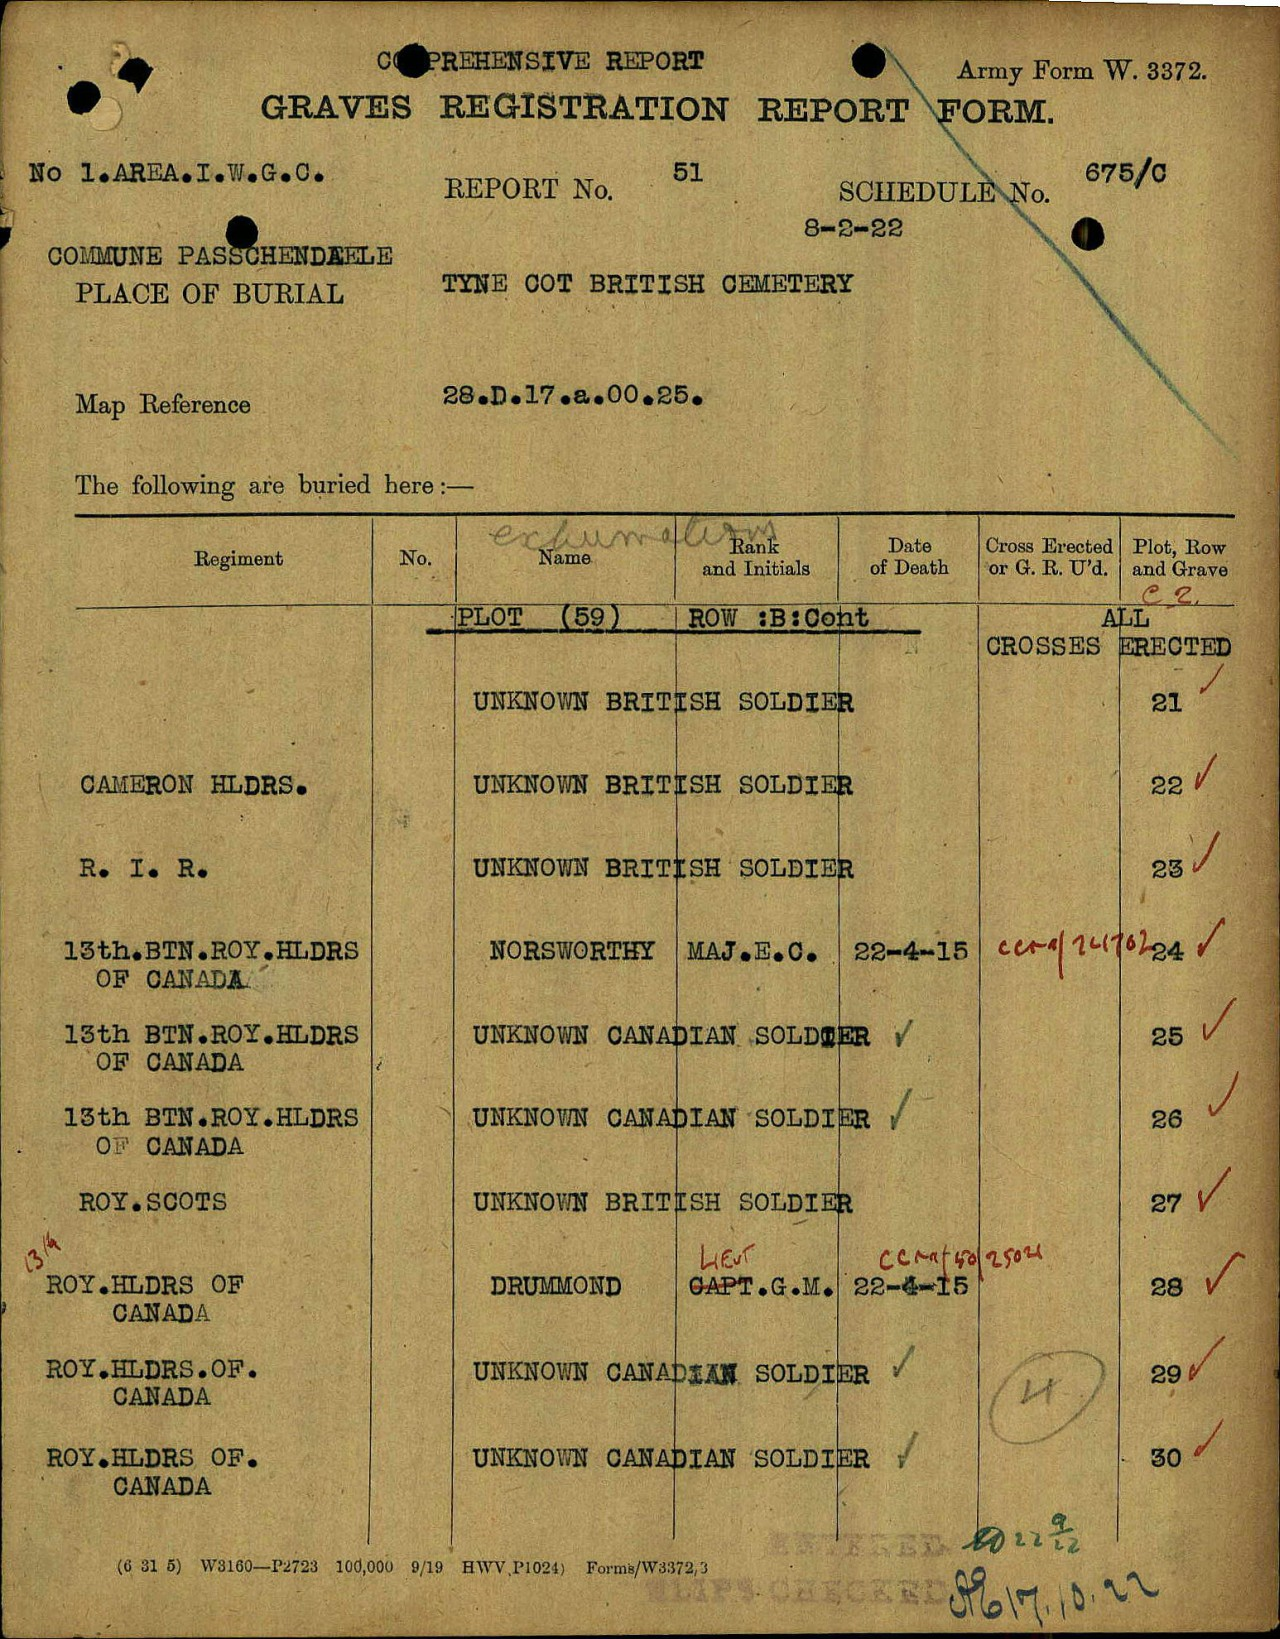 Grave Registration Report– The CWGC Graves Registration Report Form (GRRF) shows that Major Norsworthy is buried in Plot 59 Row B Grave 24 of the Tyne Cot (British) Cemetery. Five (5) other men of the 13th Battalion are listed on the same page. The GRRF was prepared on the basis of the identification noted on the COG-BR (see other image).